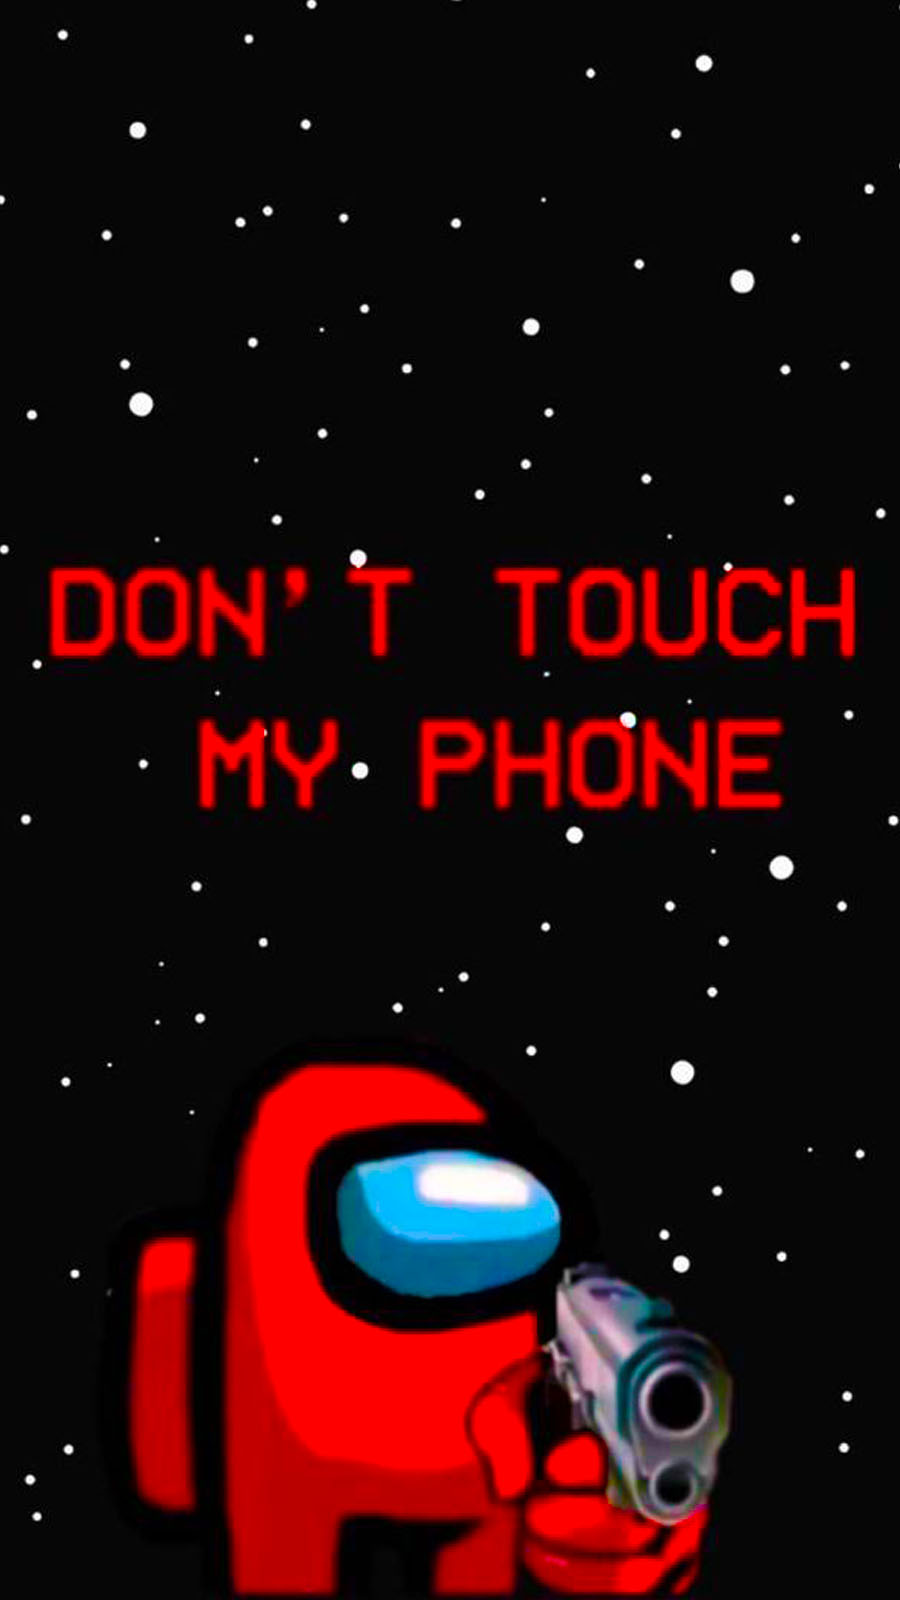 fond-decran-smartphone-among-us-dont-touch-my-phone